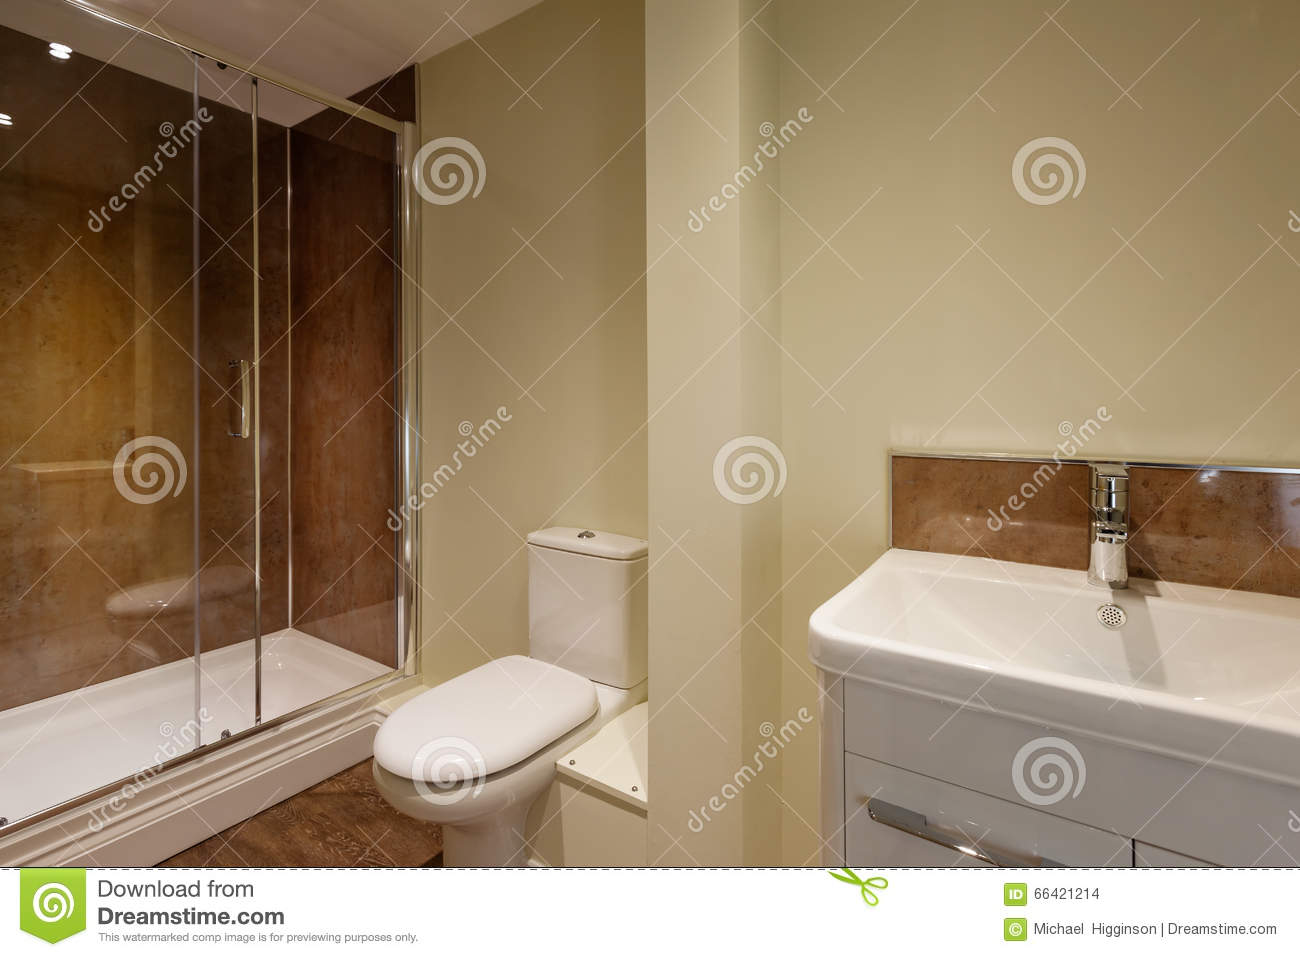 Water Closet stock photo. Image of water, sink, basin - 66421214